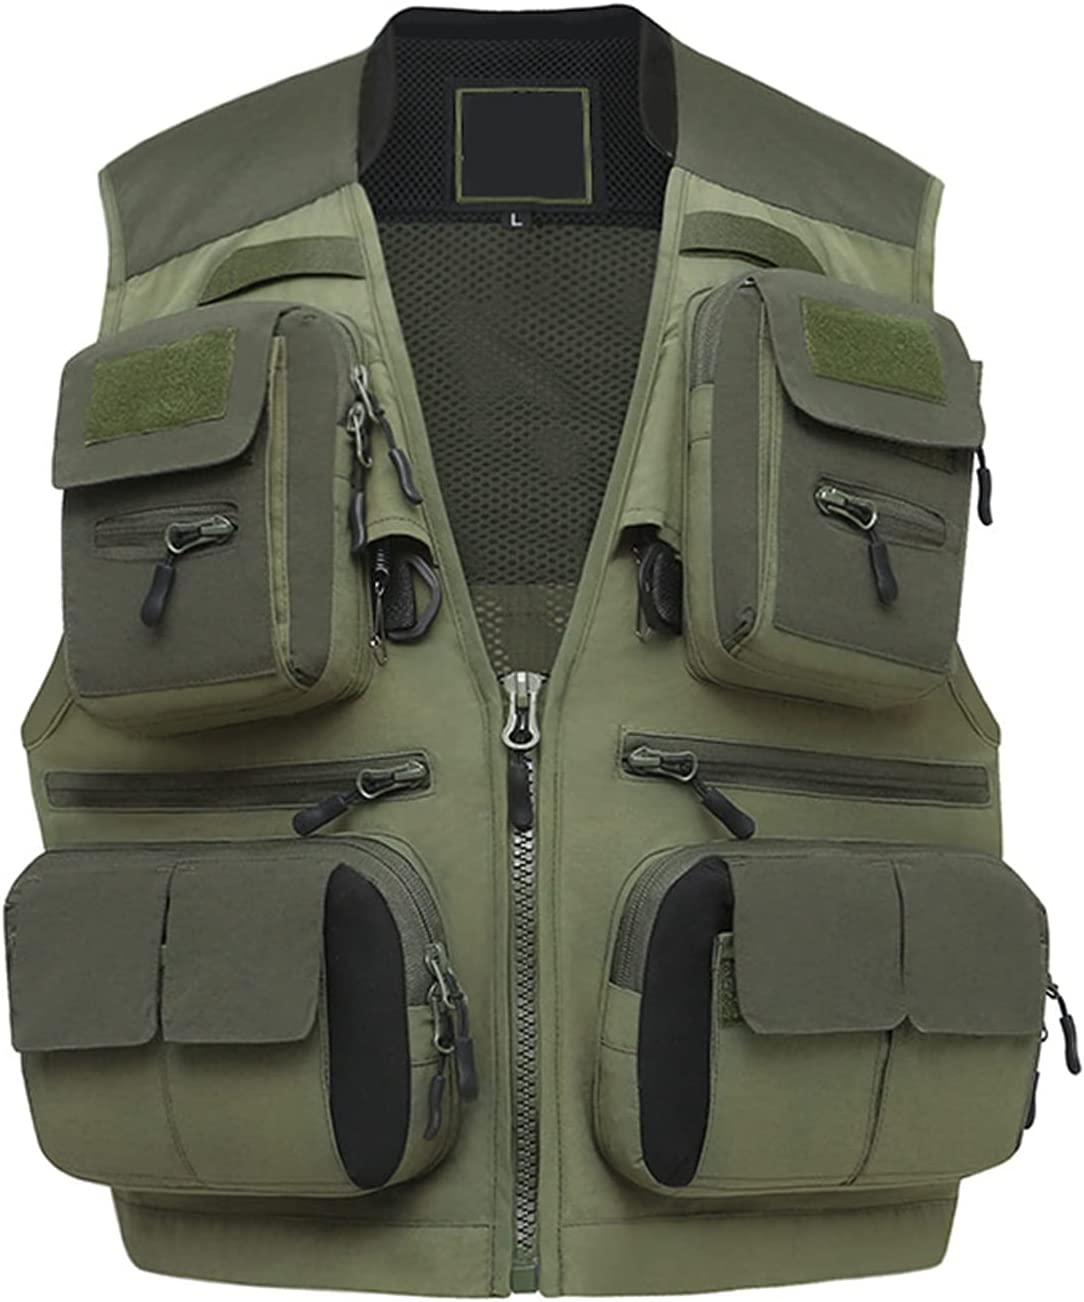 Outdoor safety Fishing Limited time sale Gear Vest with Photography 21 Pockets Travel Ves